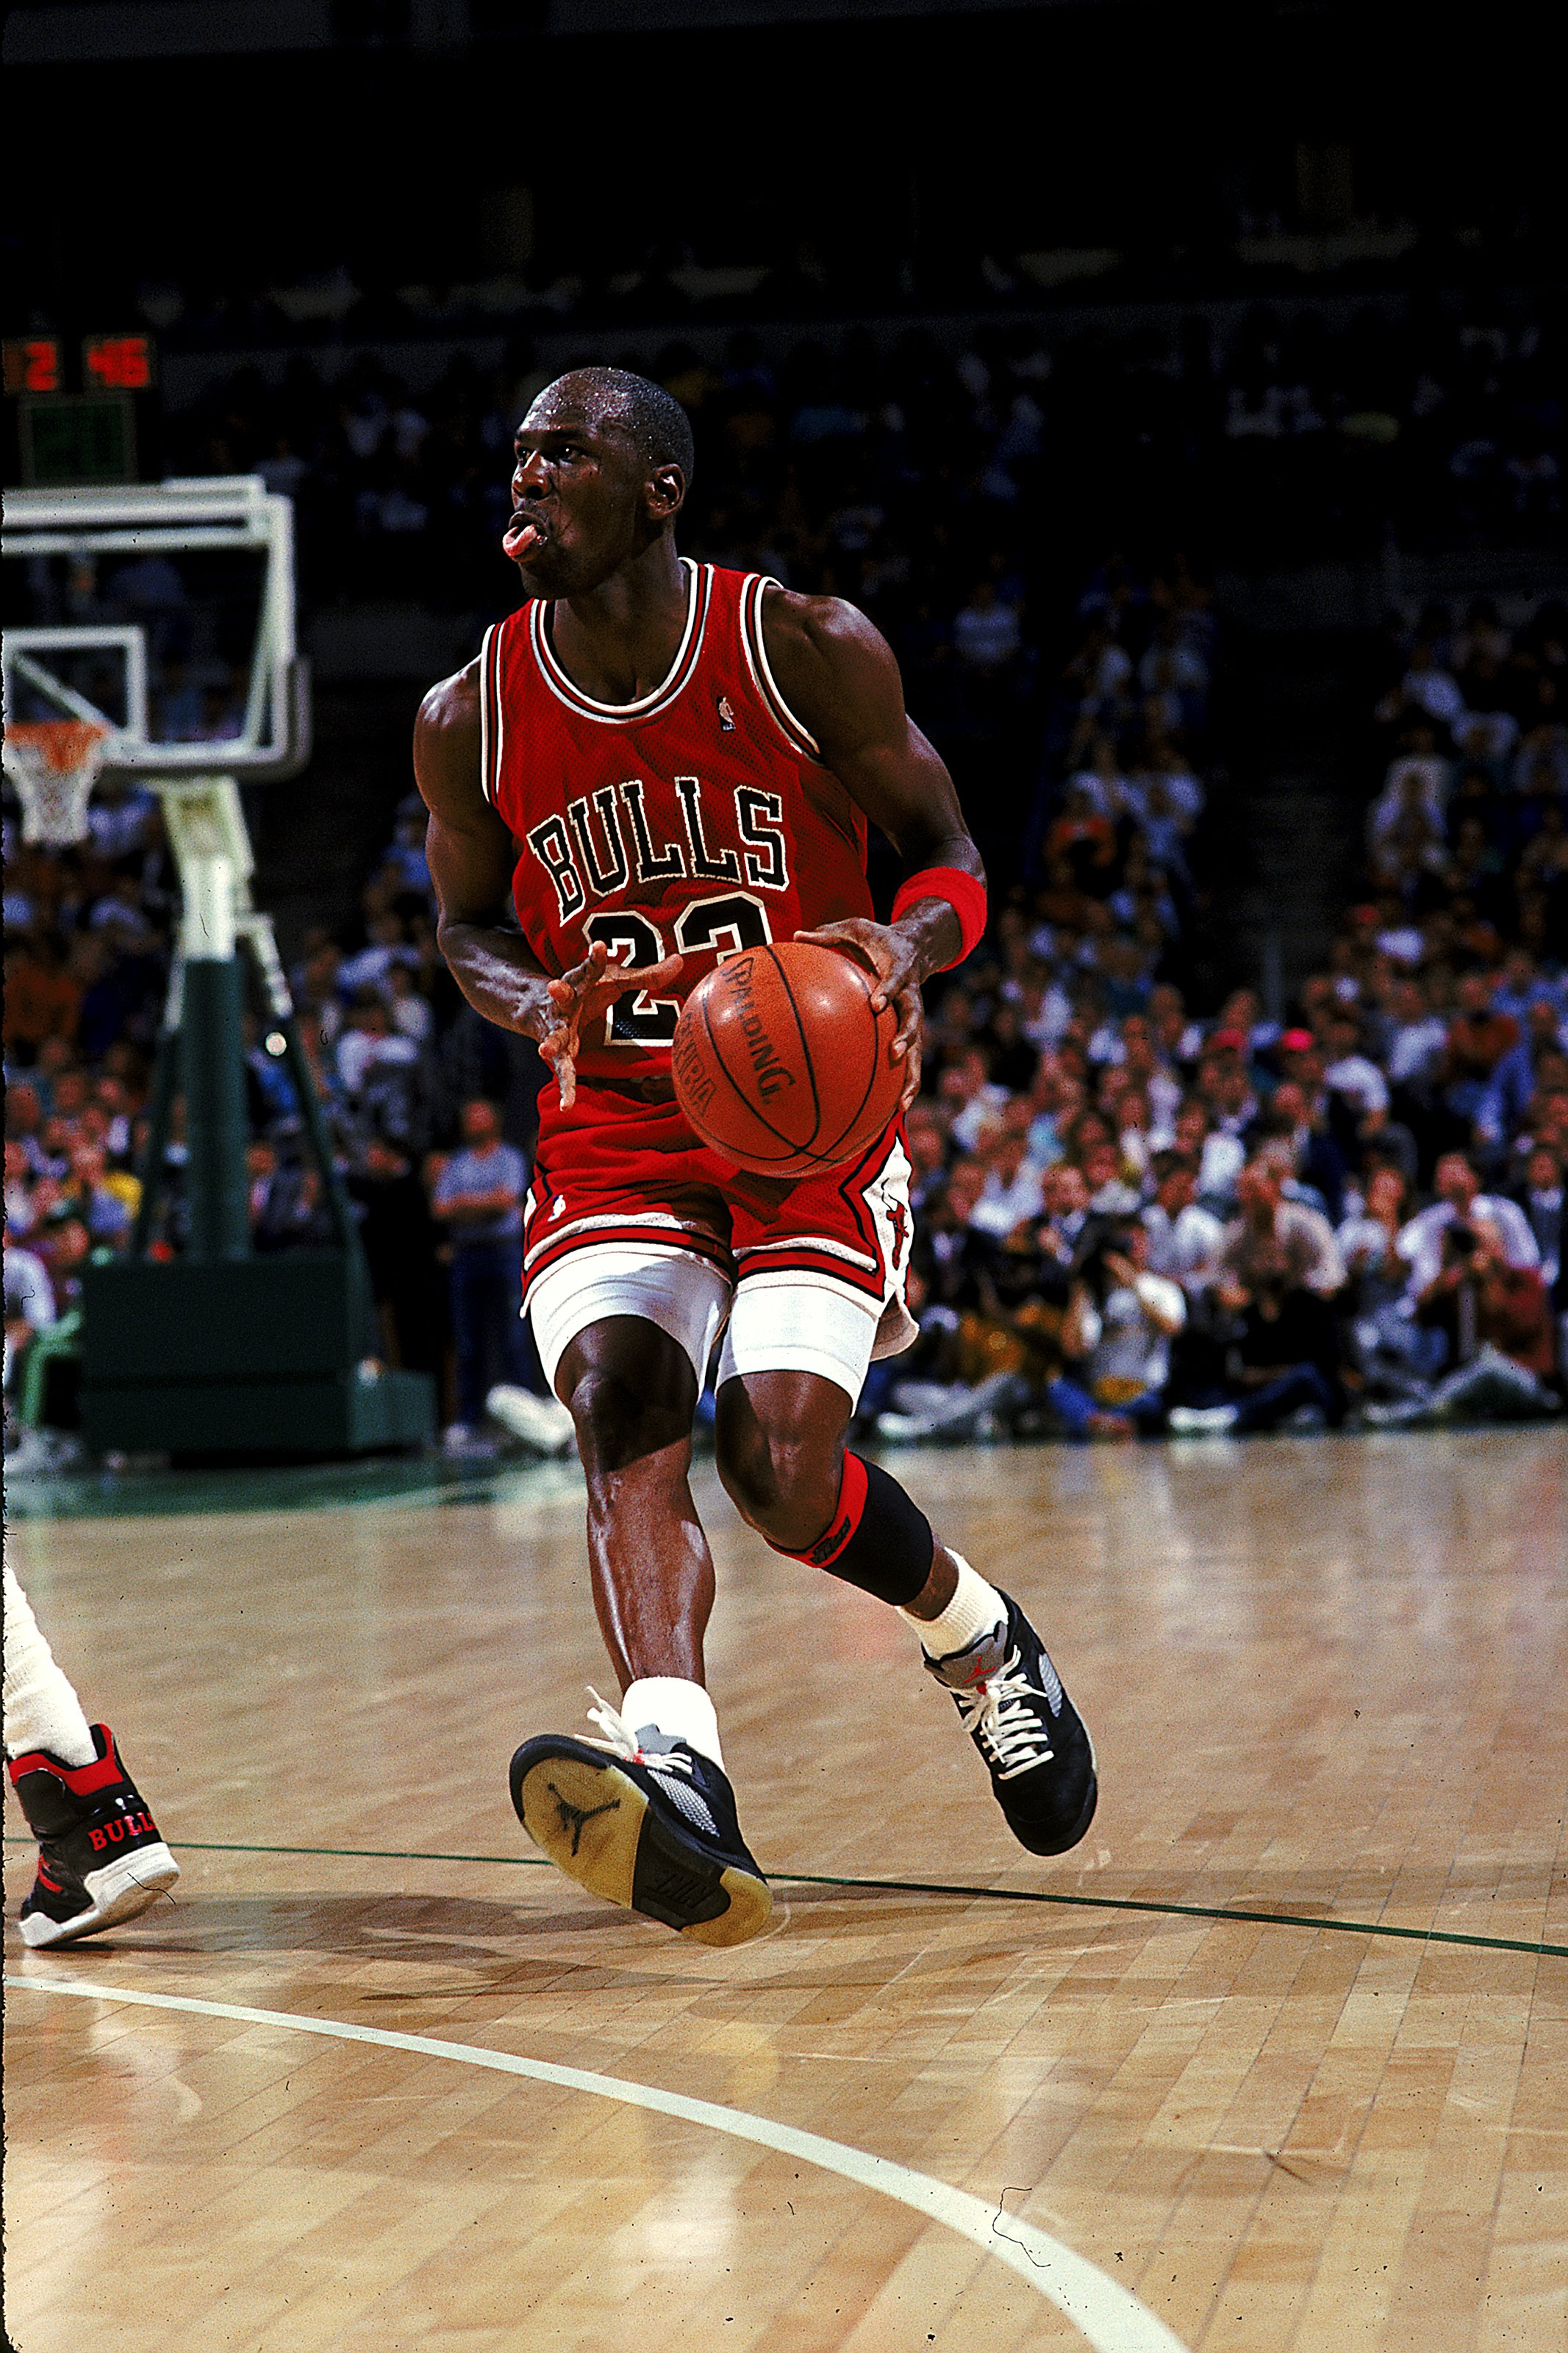 1990:  Michael Jordan #23 of the Chicago Bulls moves with the ball during the game.   Mandatory Credit: Allsport  /Allsport